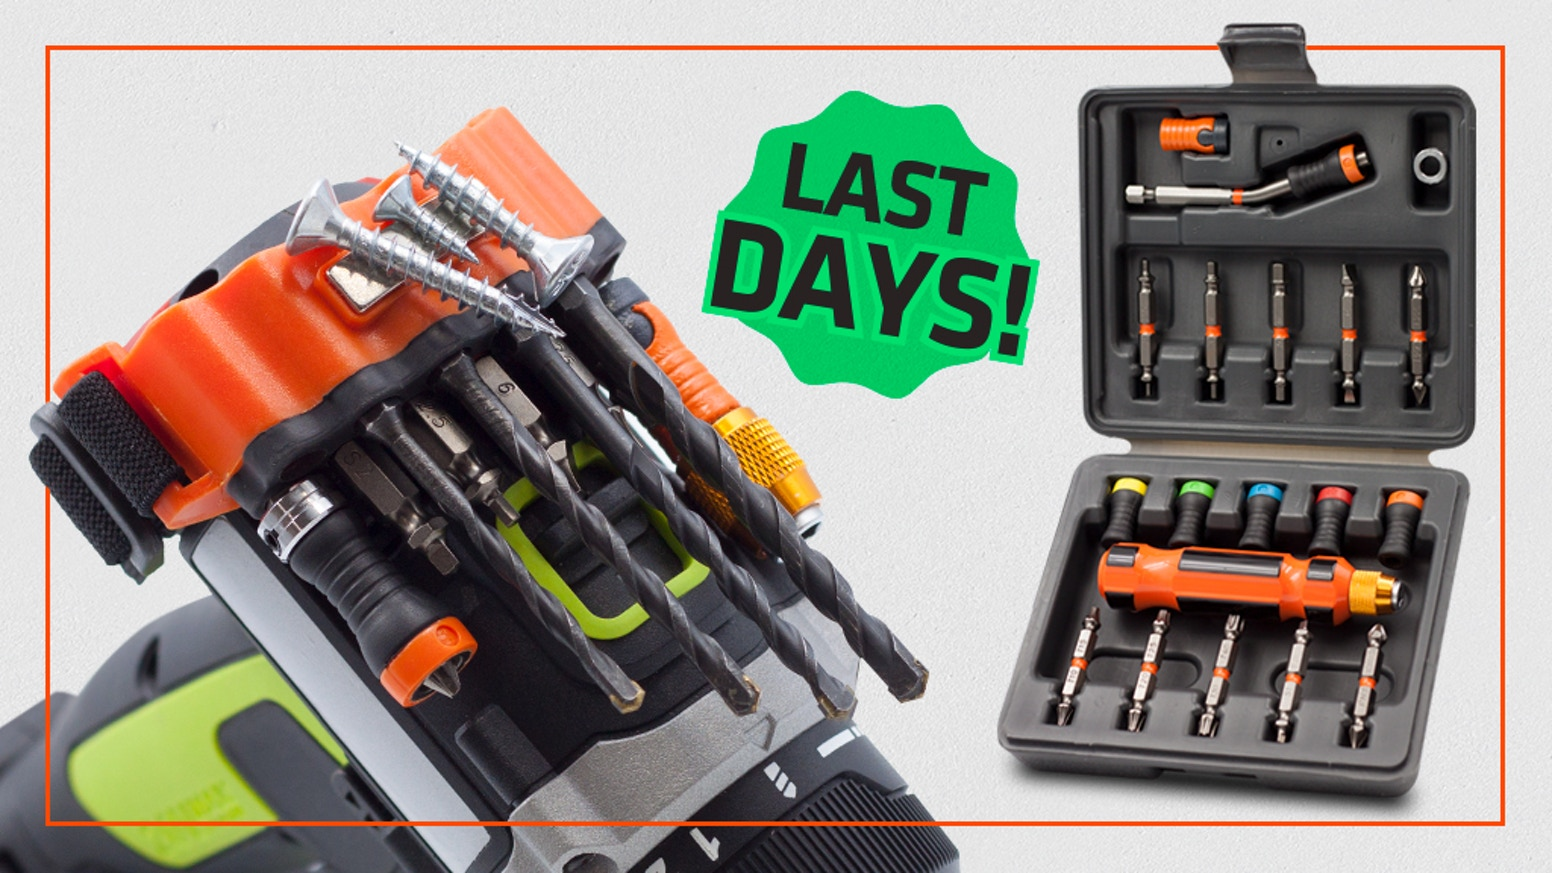 The ultimate experience for your DIY projects, unexpected repairs and maintenance needs. Drill, Drive, or Nail like a Pro.